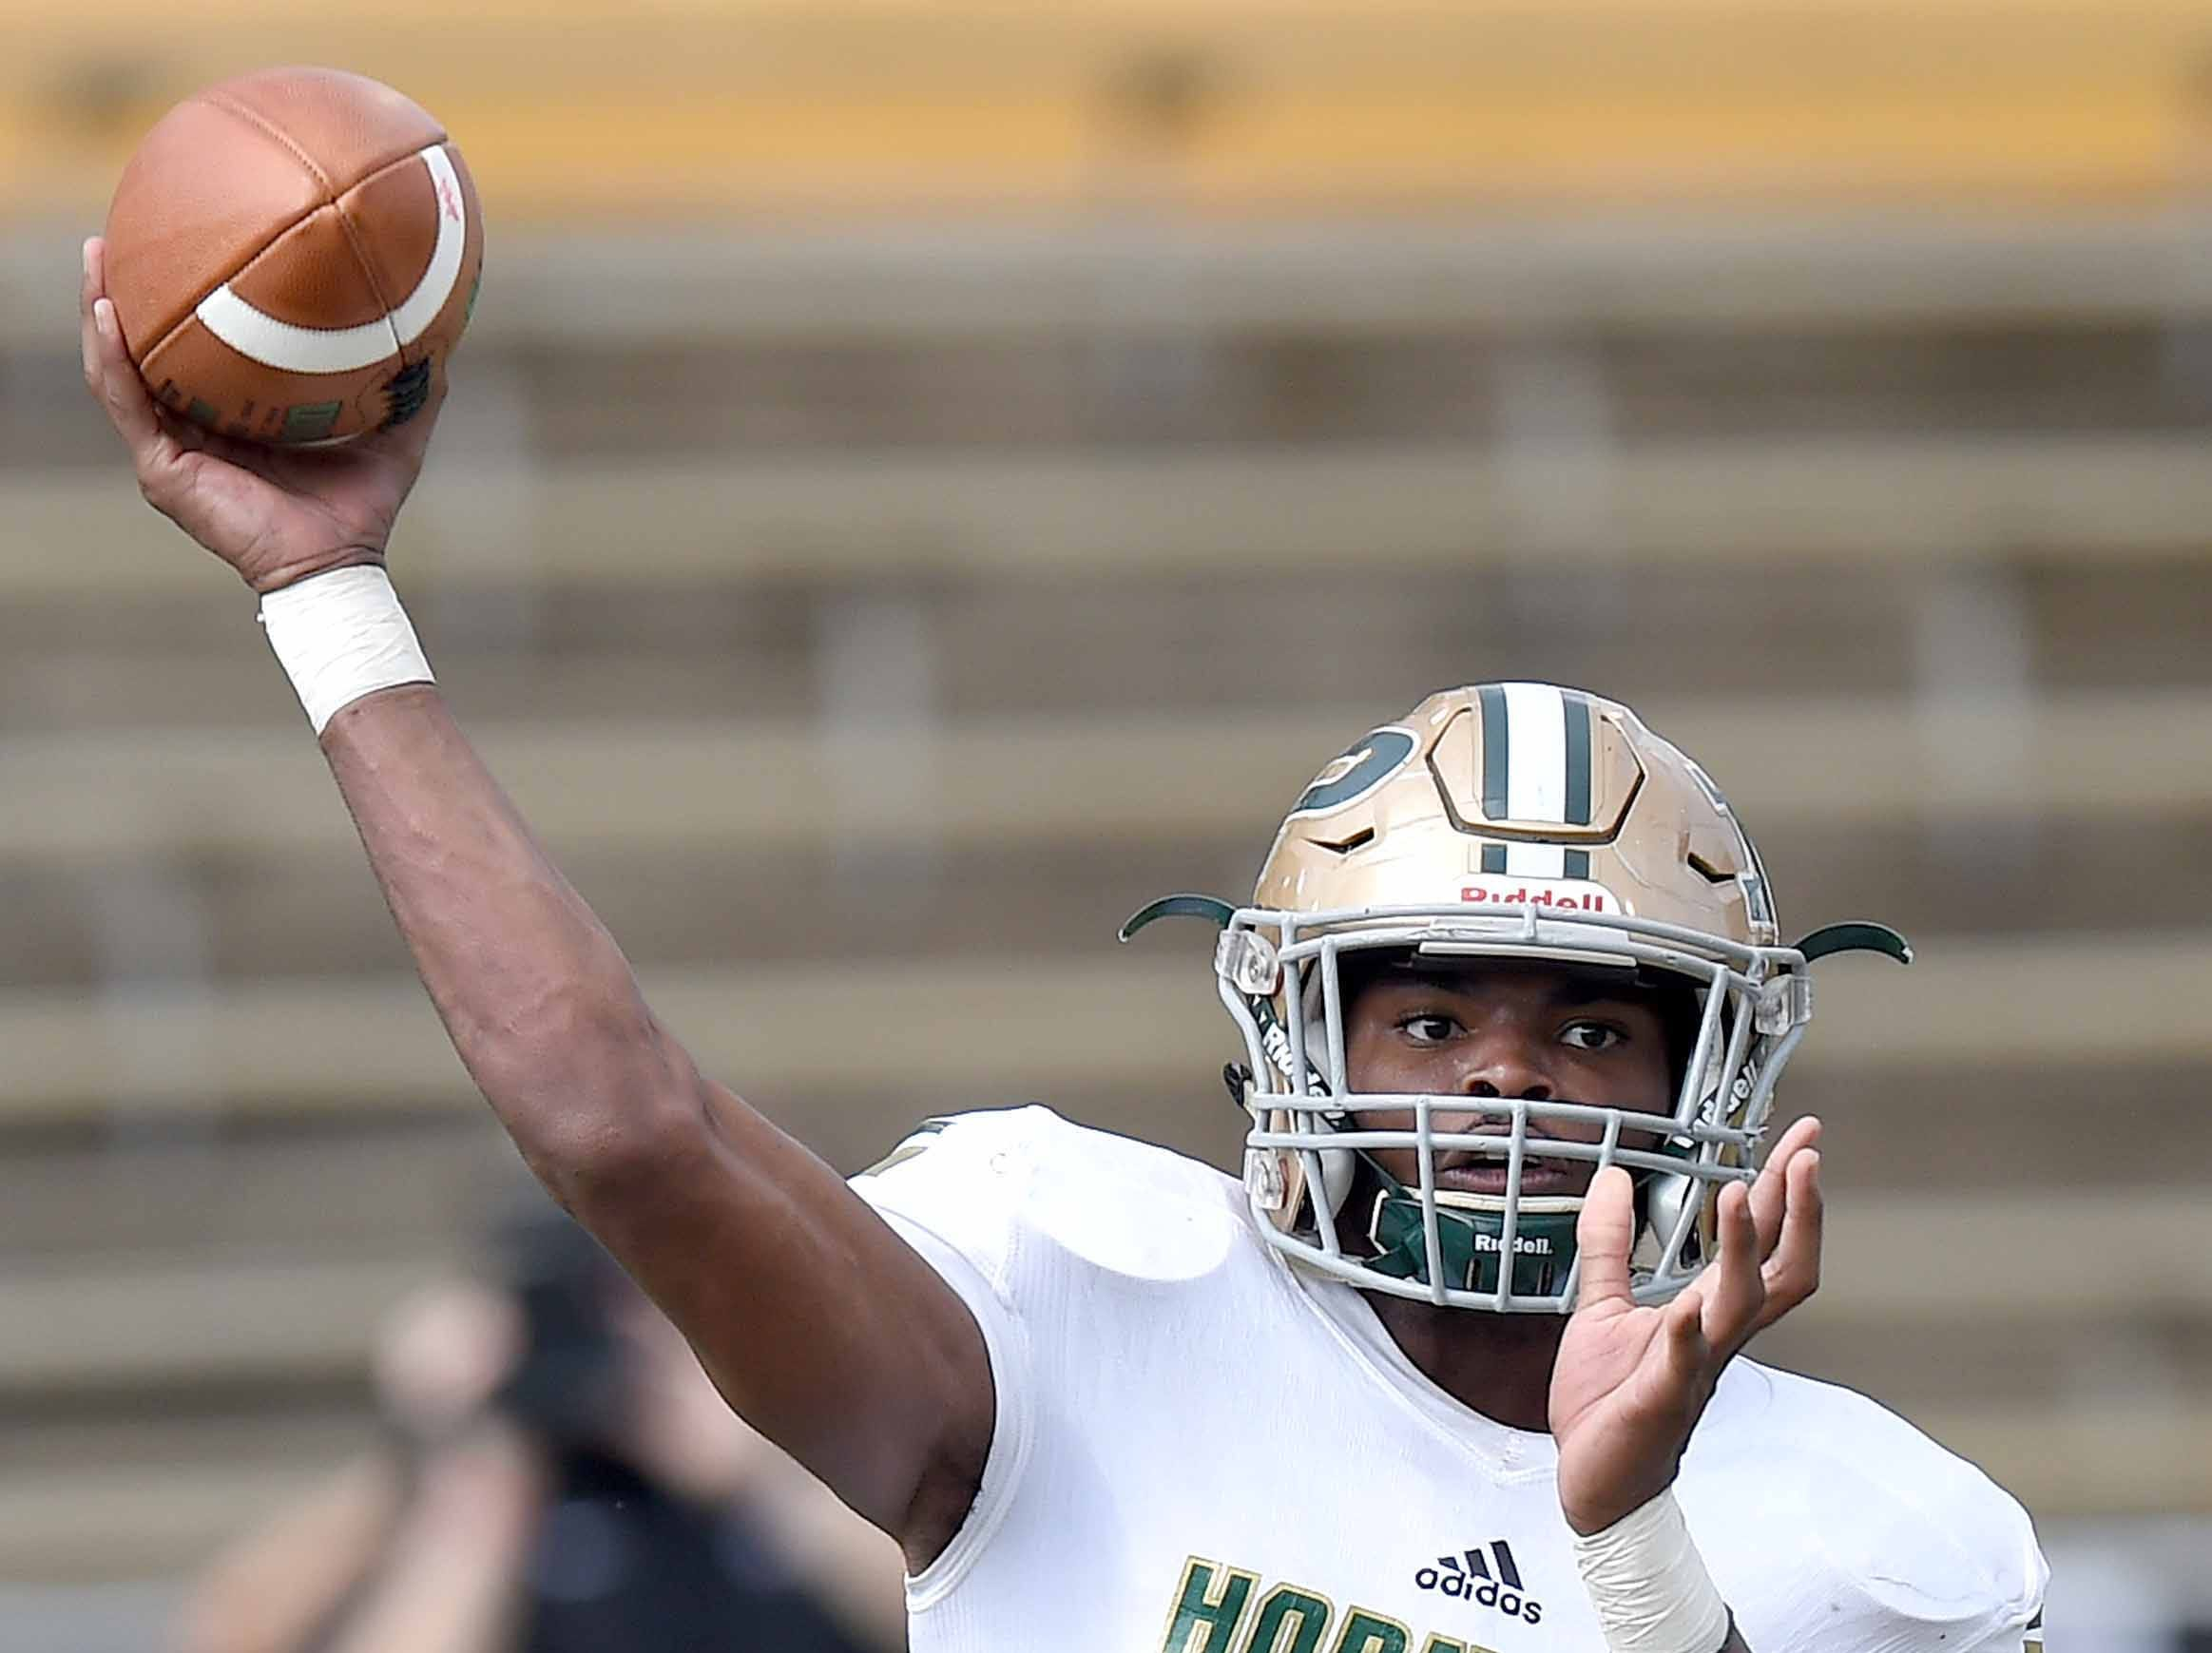 Poplarville's Antonio Barnes (9) throws a pass against Louisville on Saturday, December 1, 2018, in the MHSAA BlueCross BlueShield Gridiron Classic High School Football Championships in M.M. Roberts Stadium on the University of Southern Mississippi campus in Hattiesburg, Miss.